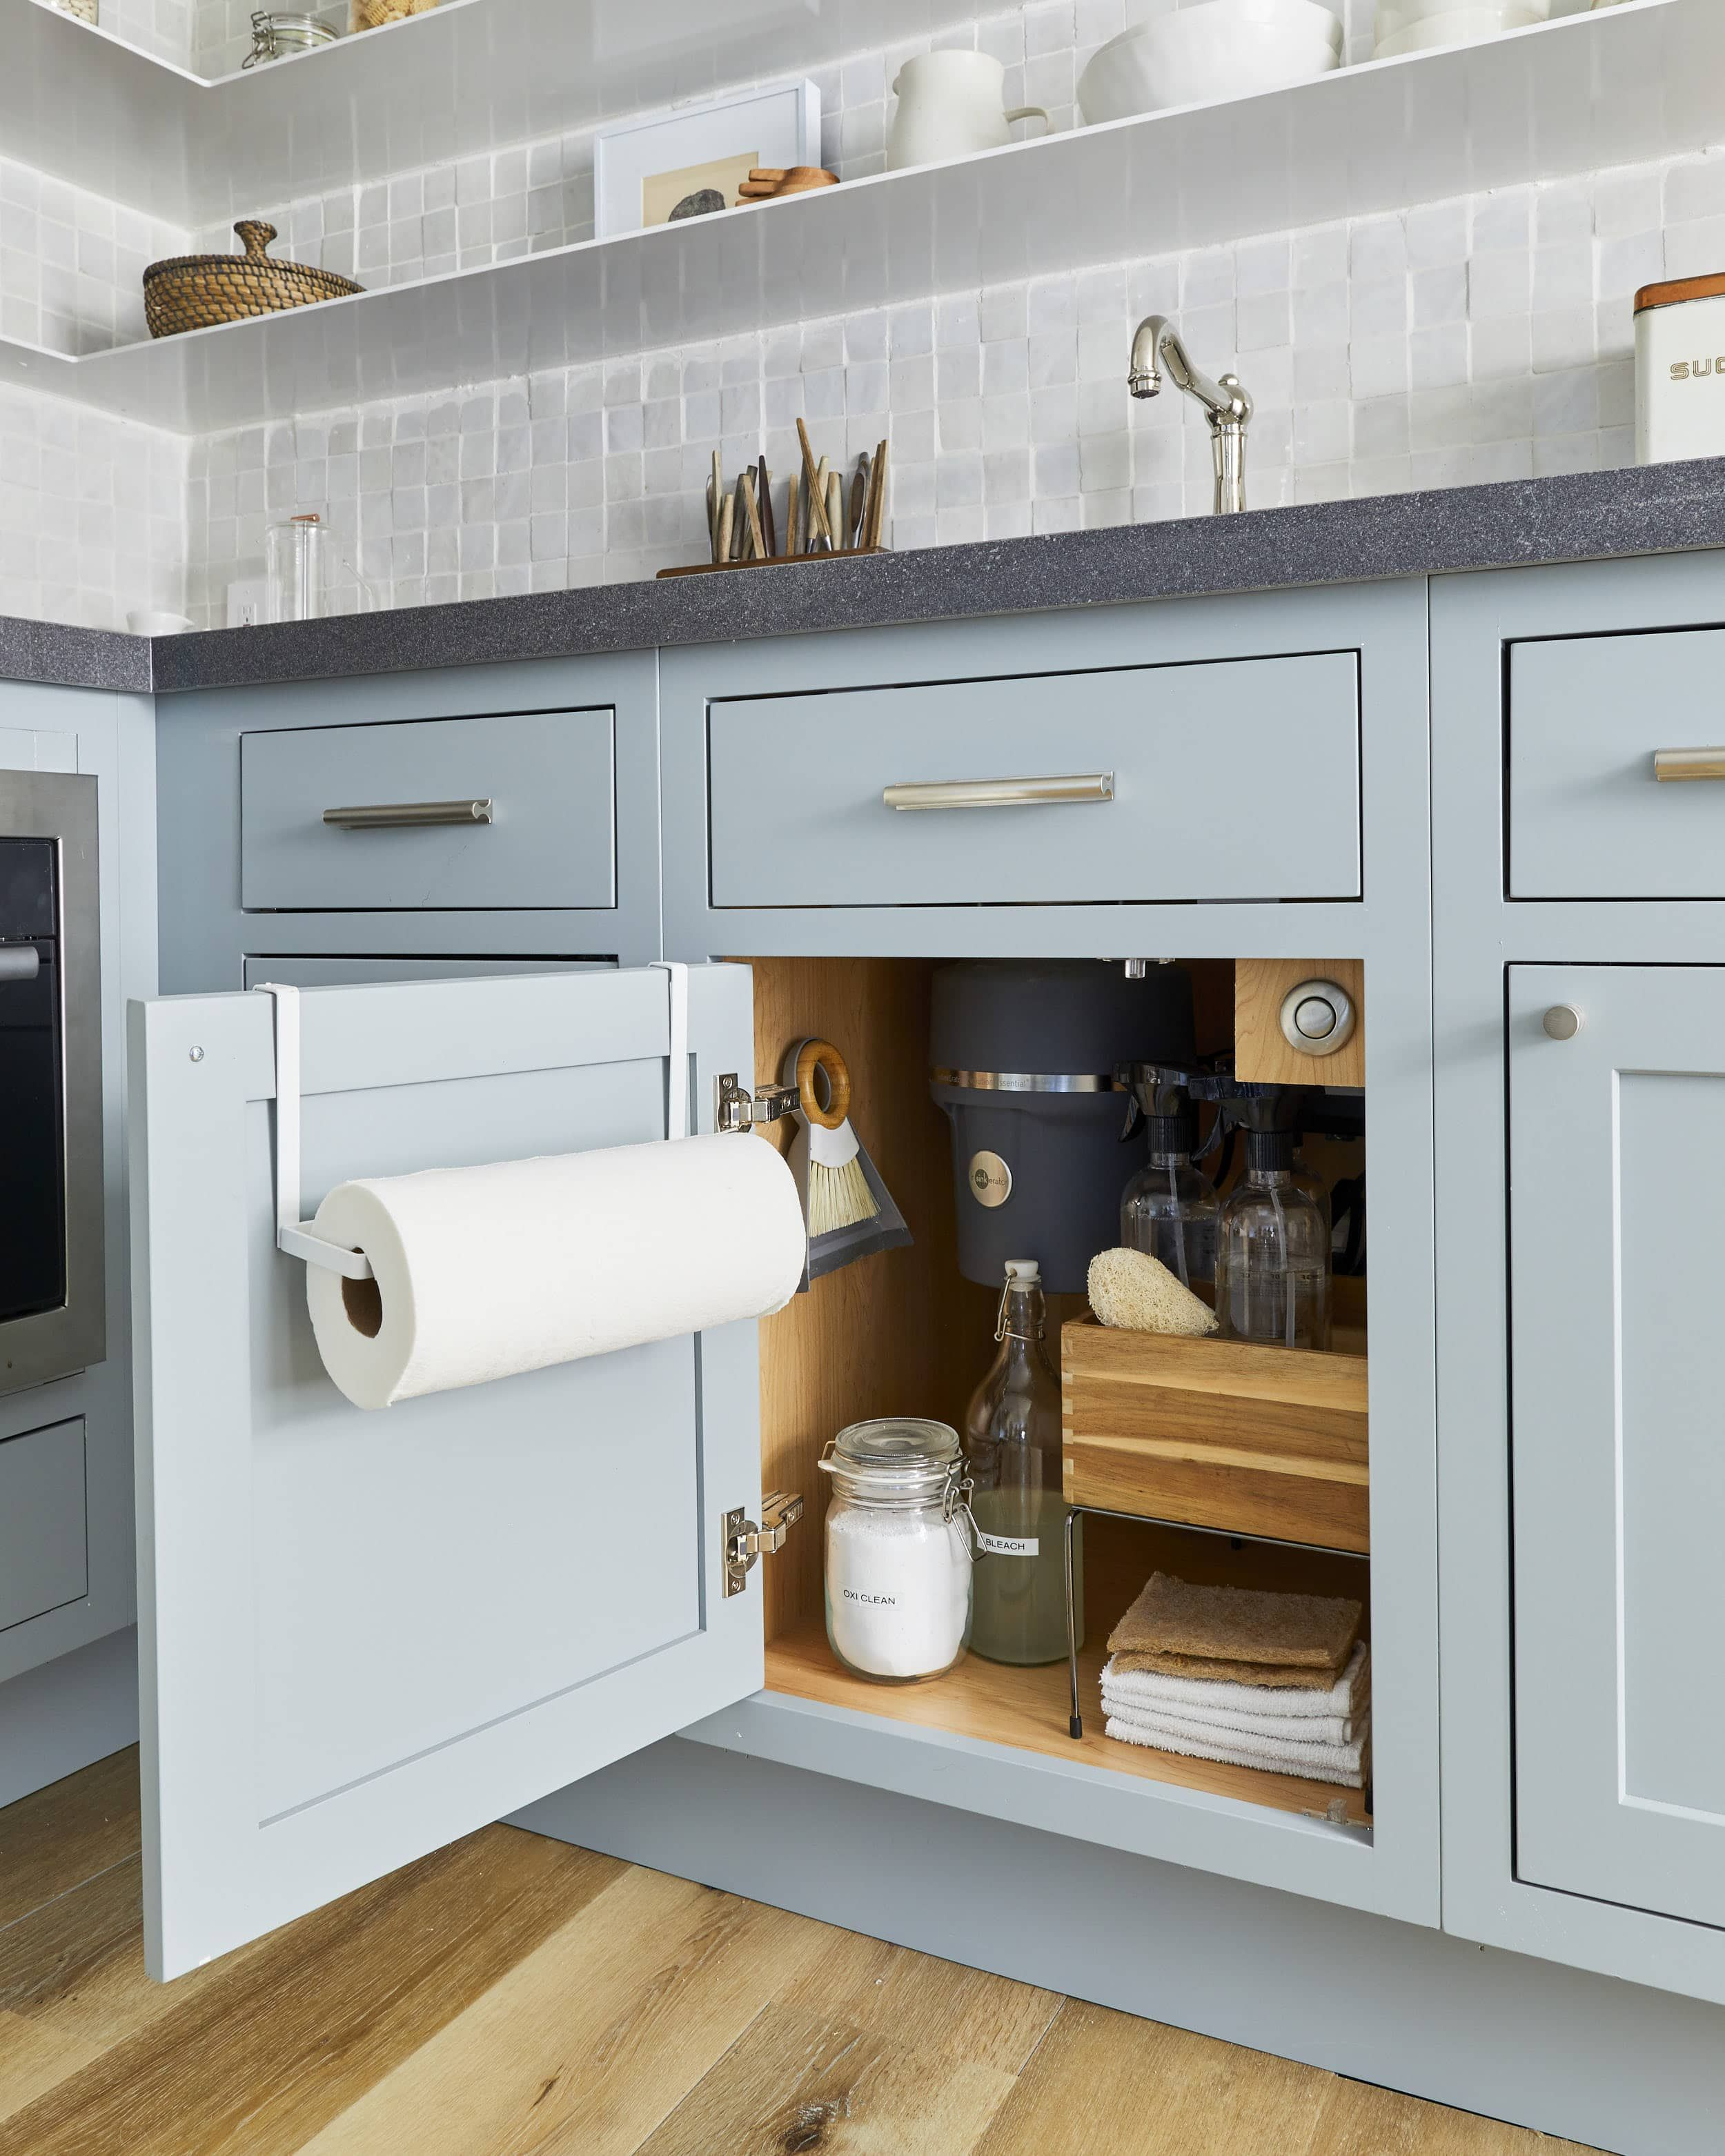 How To Design A 49 Square Foot Tiny Kitchen With Tons Of Smart Storage Tiny Kitchen Small Kitchen Kitchen Storage